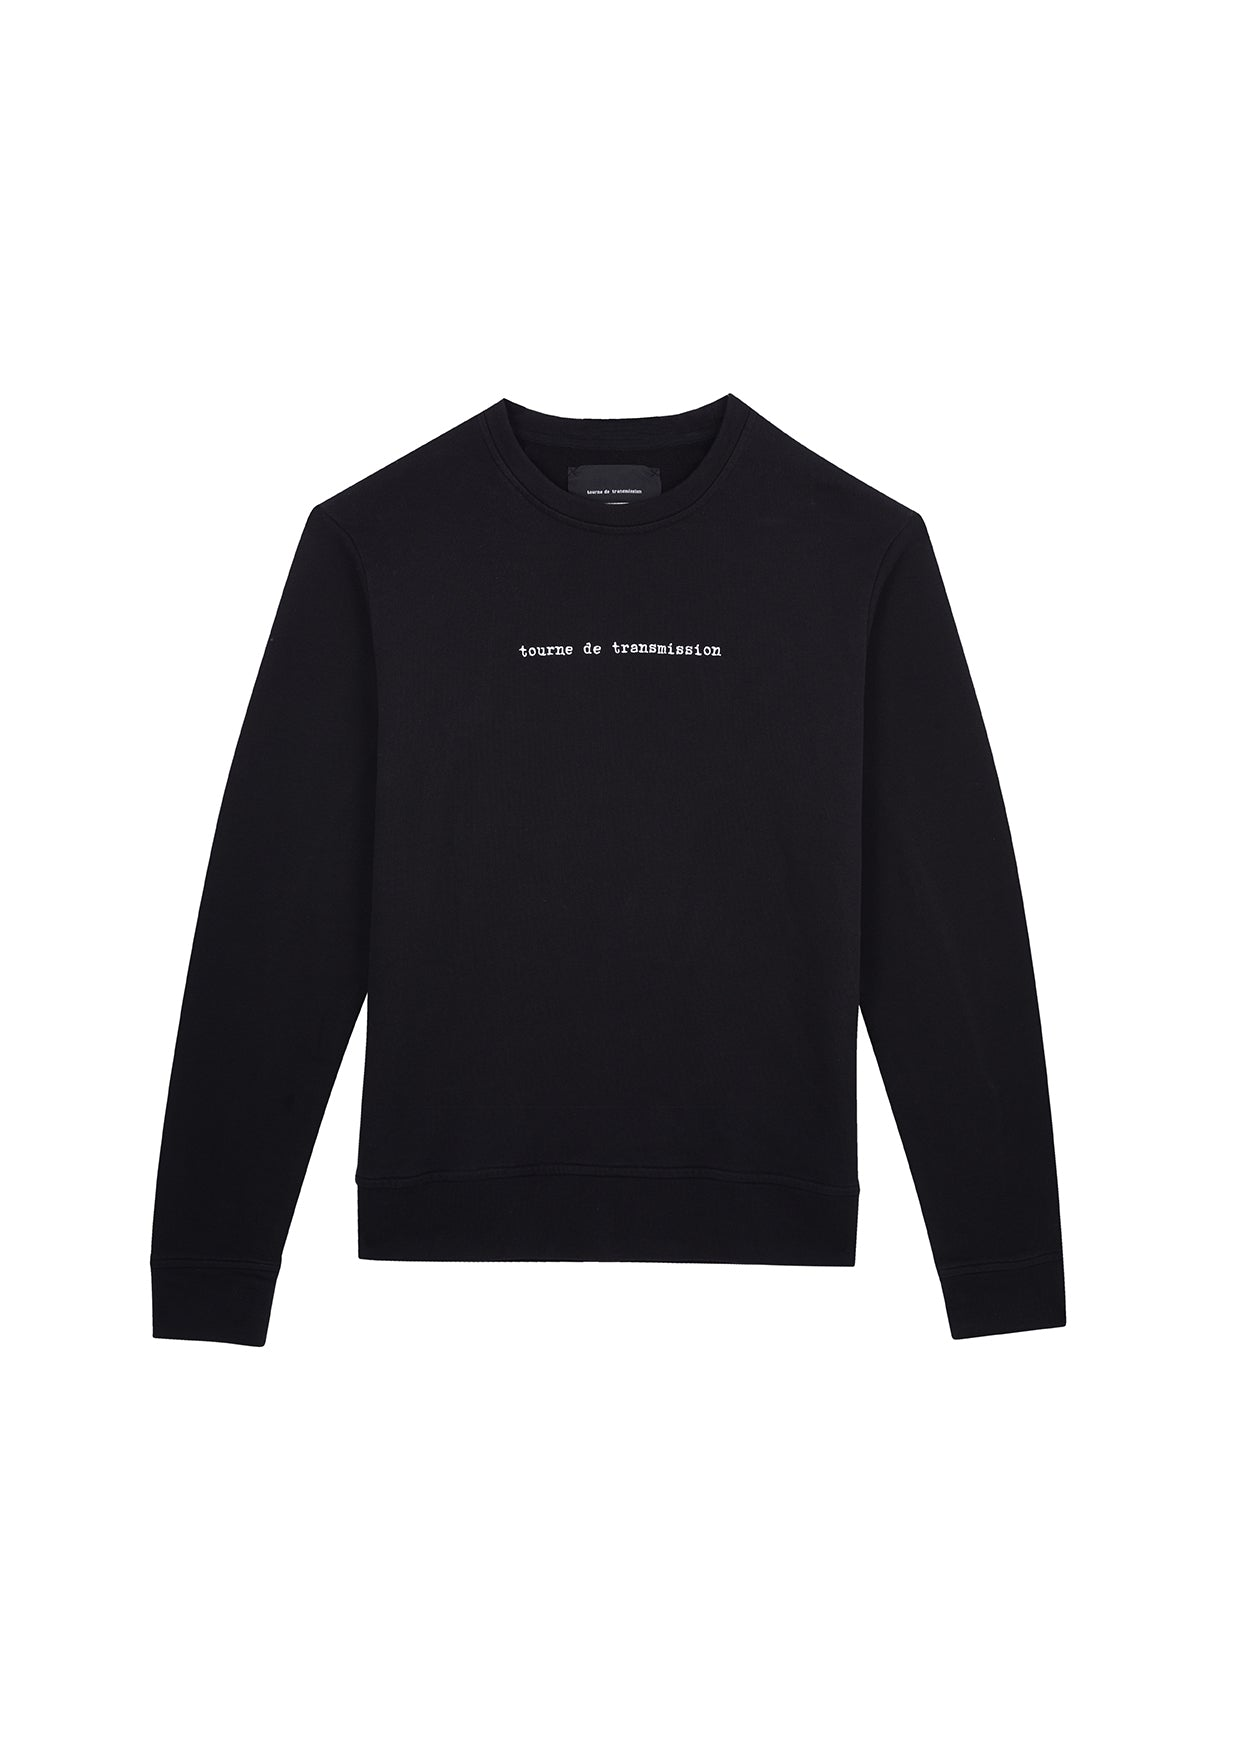 TDT Logo SWEATER - low stock